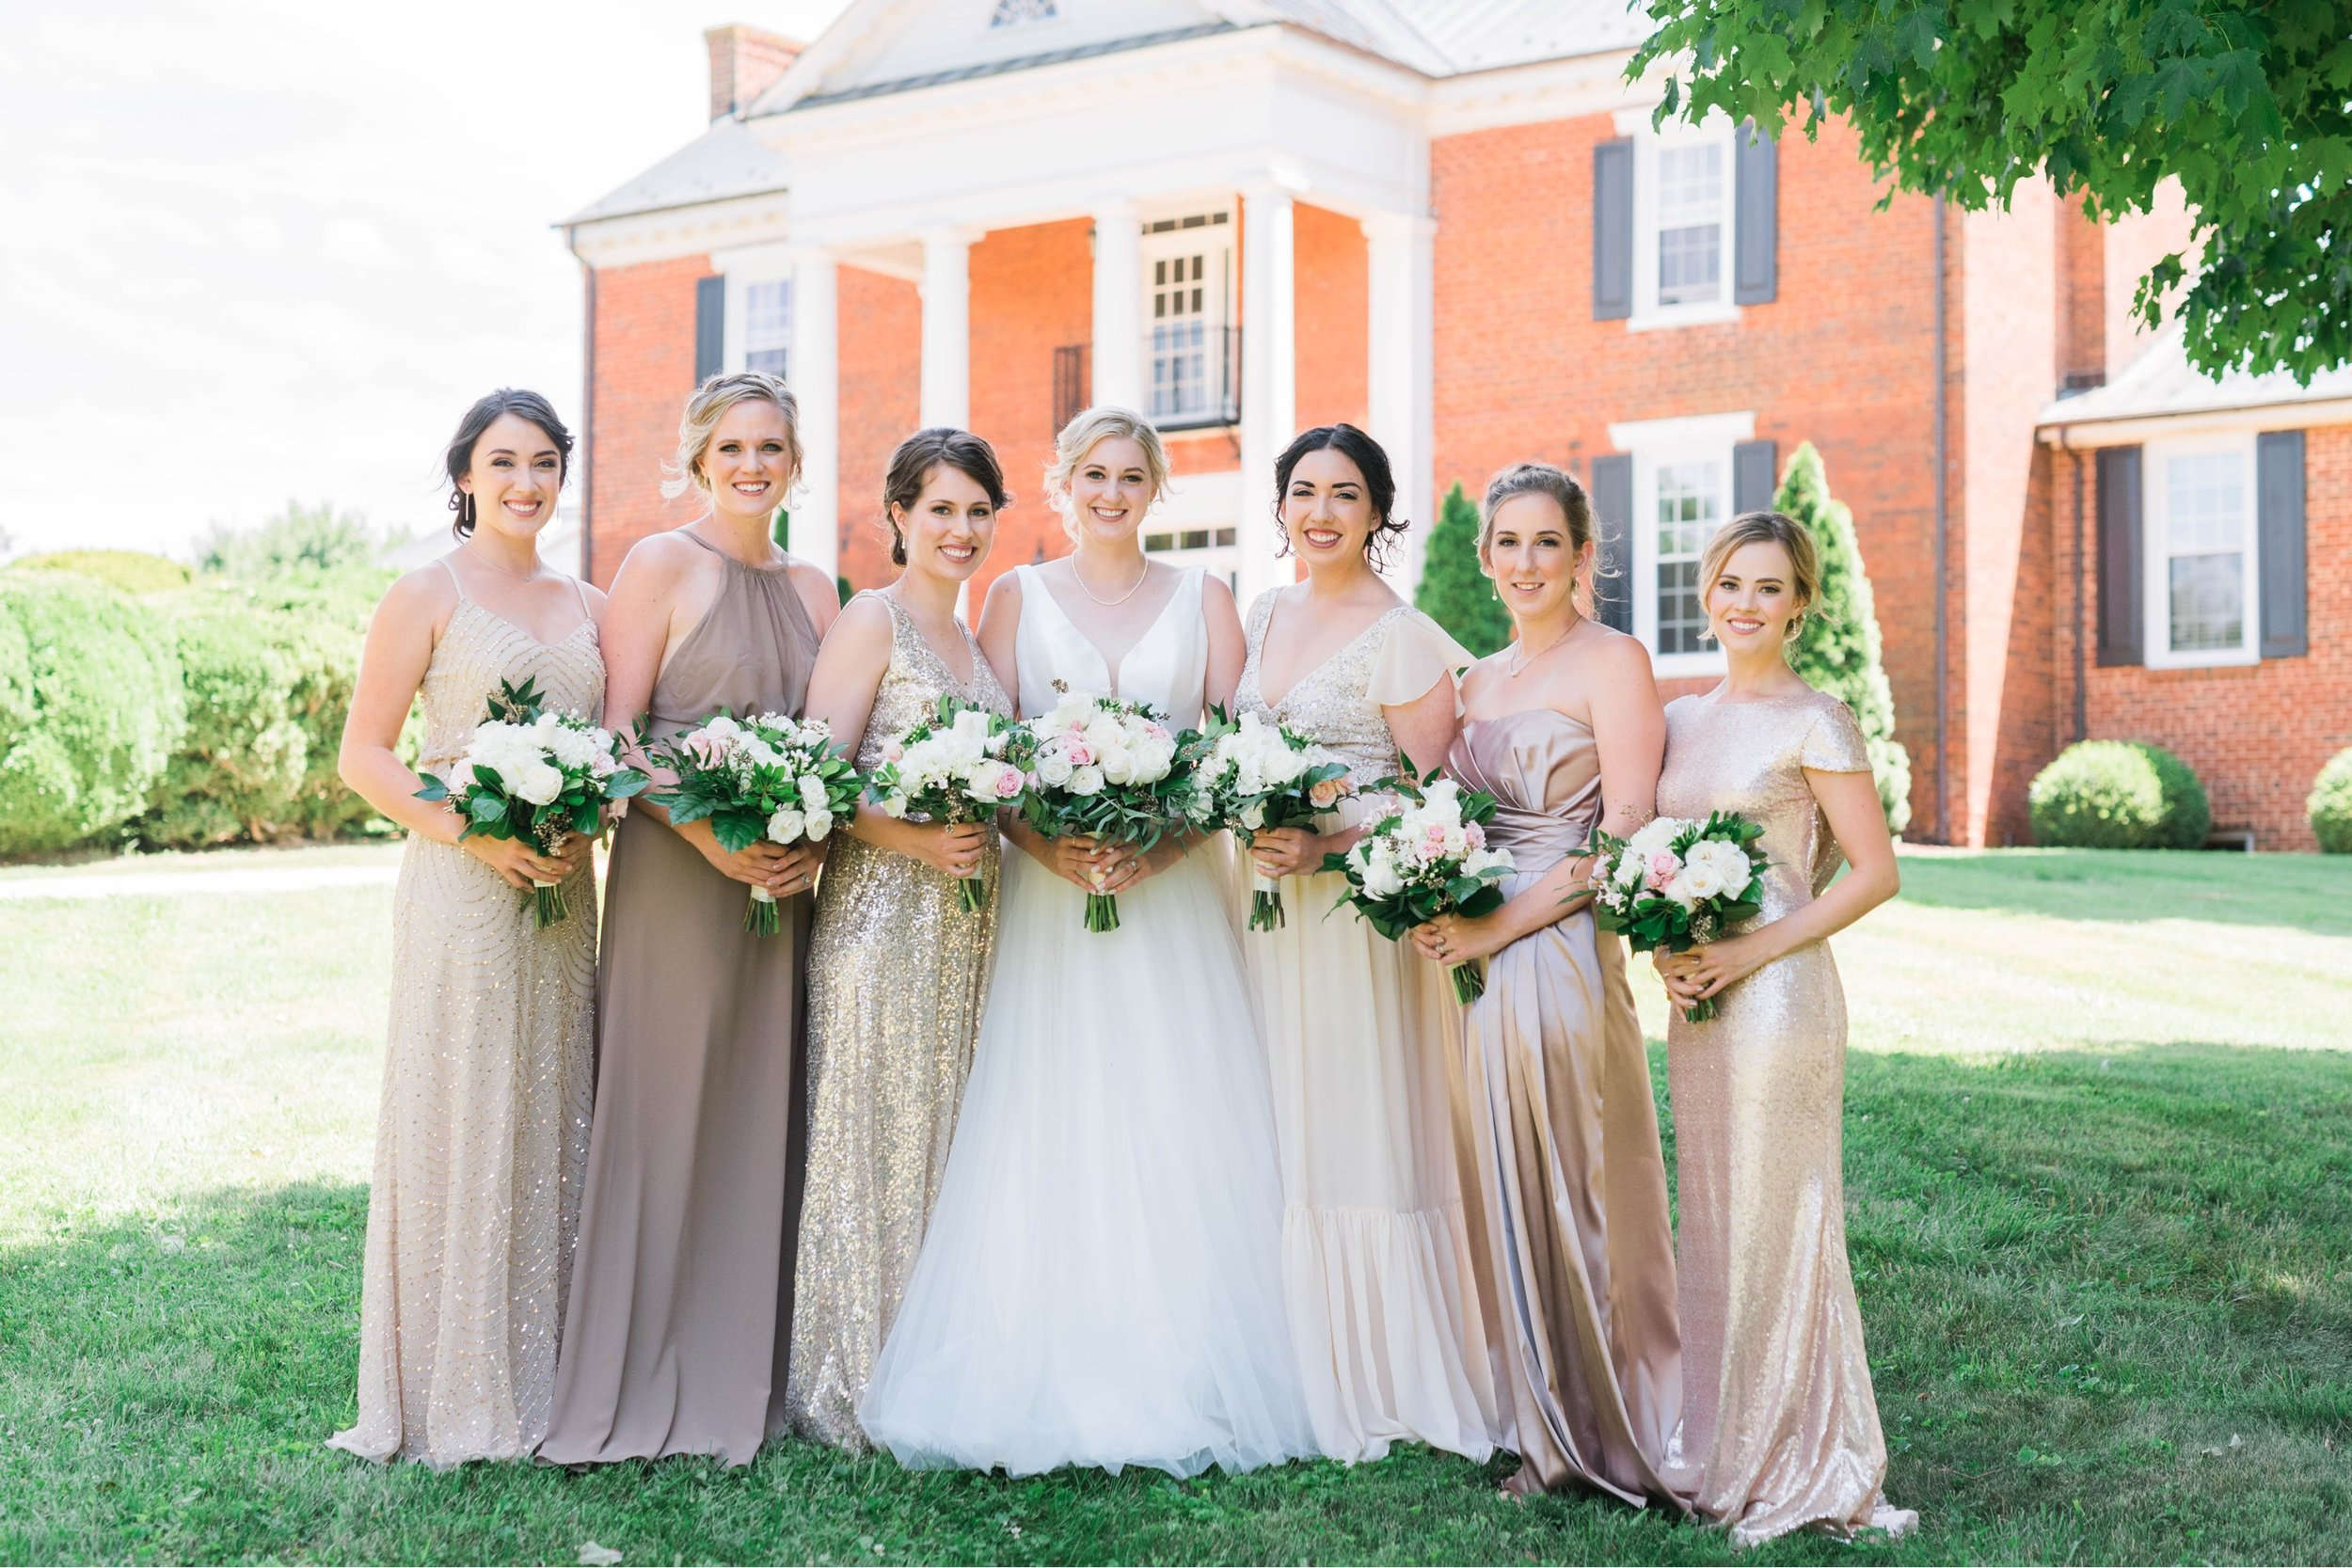 westmanorestate_entwinedevents_lynchburgweddingphotographer_Virginiaweddingphotographer_kateyam 35.jpg